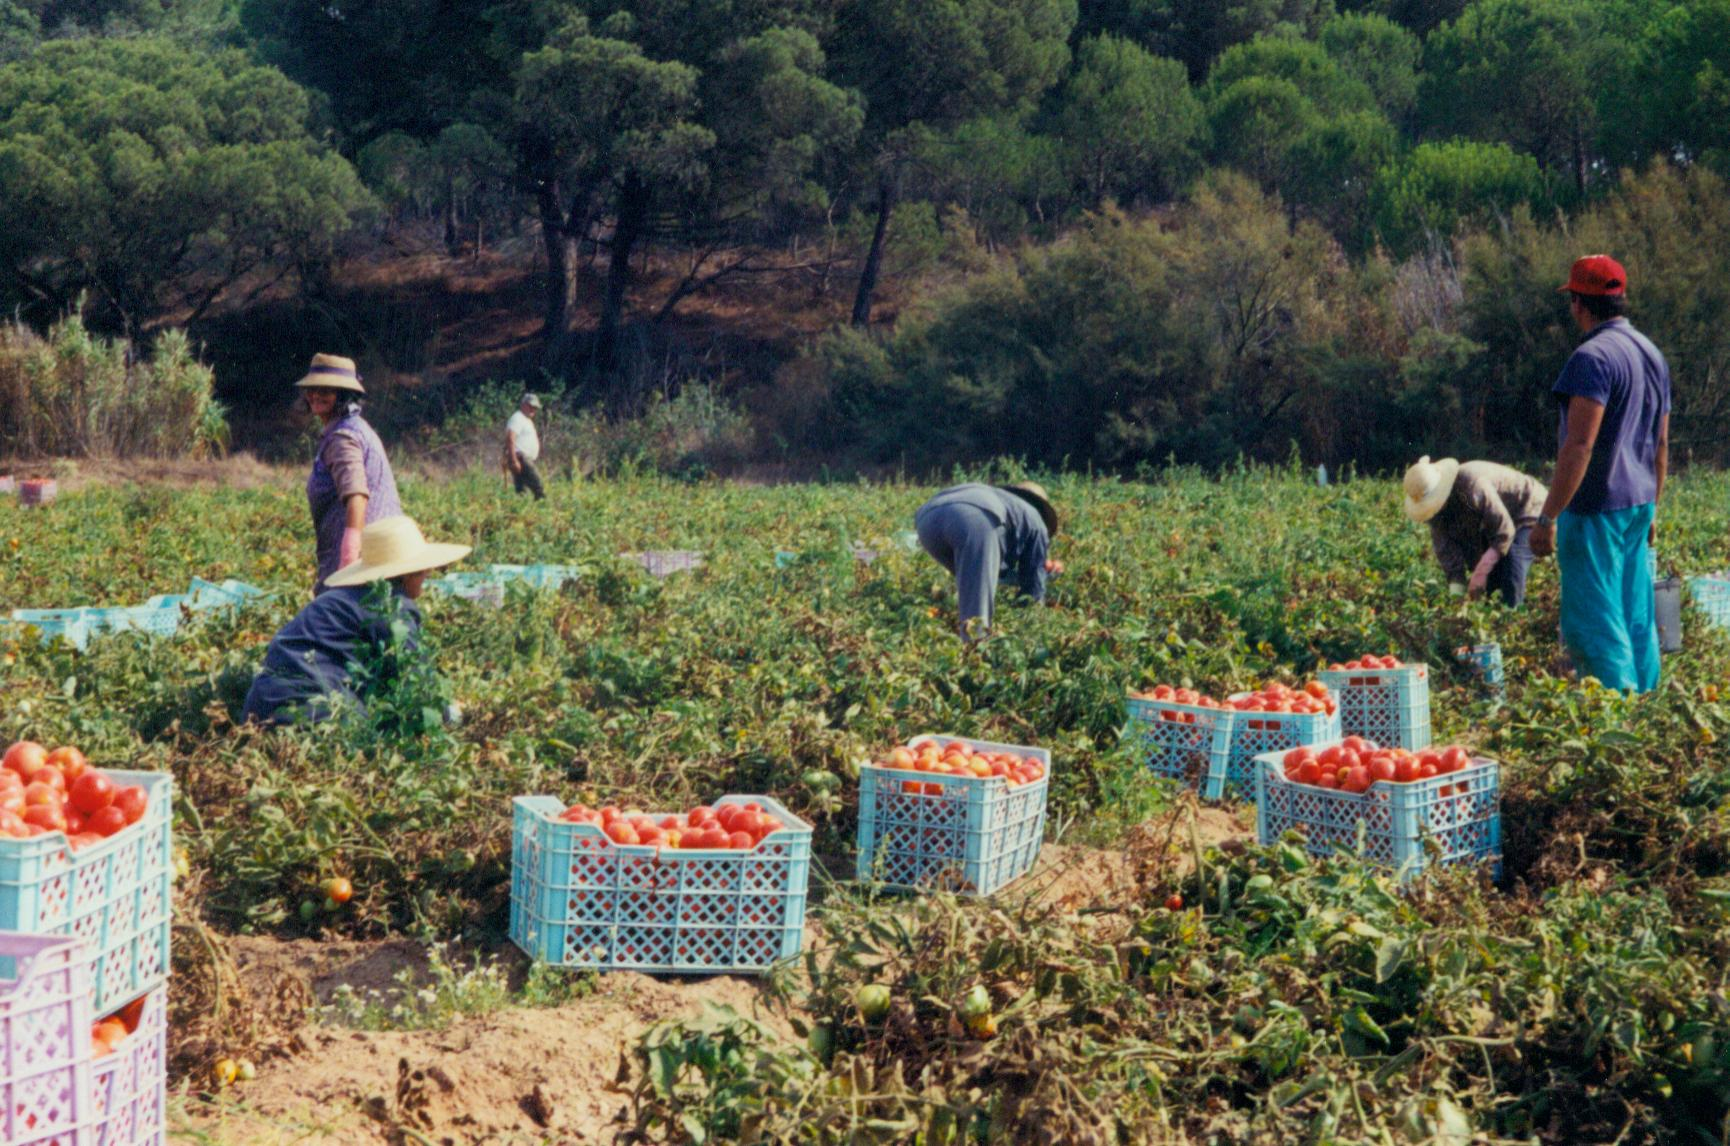 Organic tomatoes grown in Melides (Alentejo, Portugal)